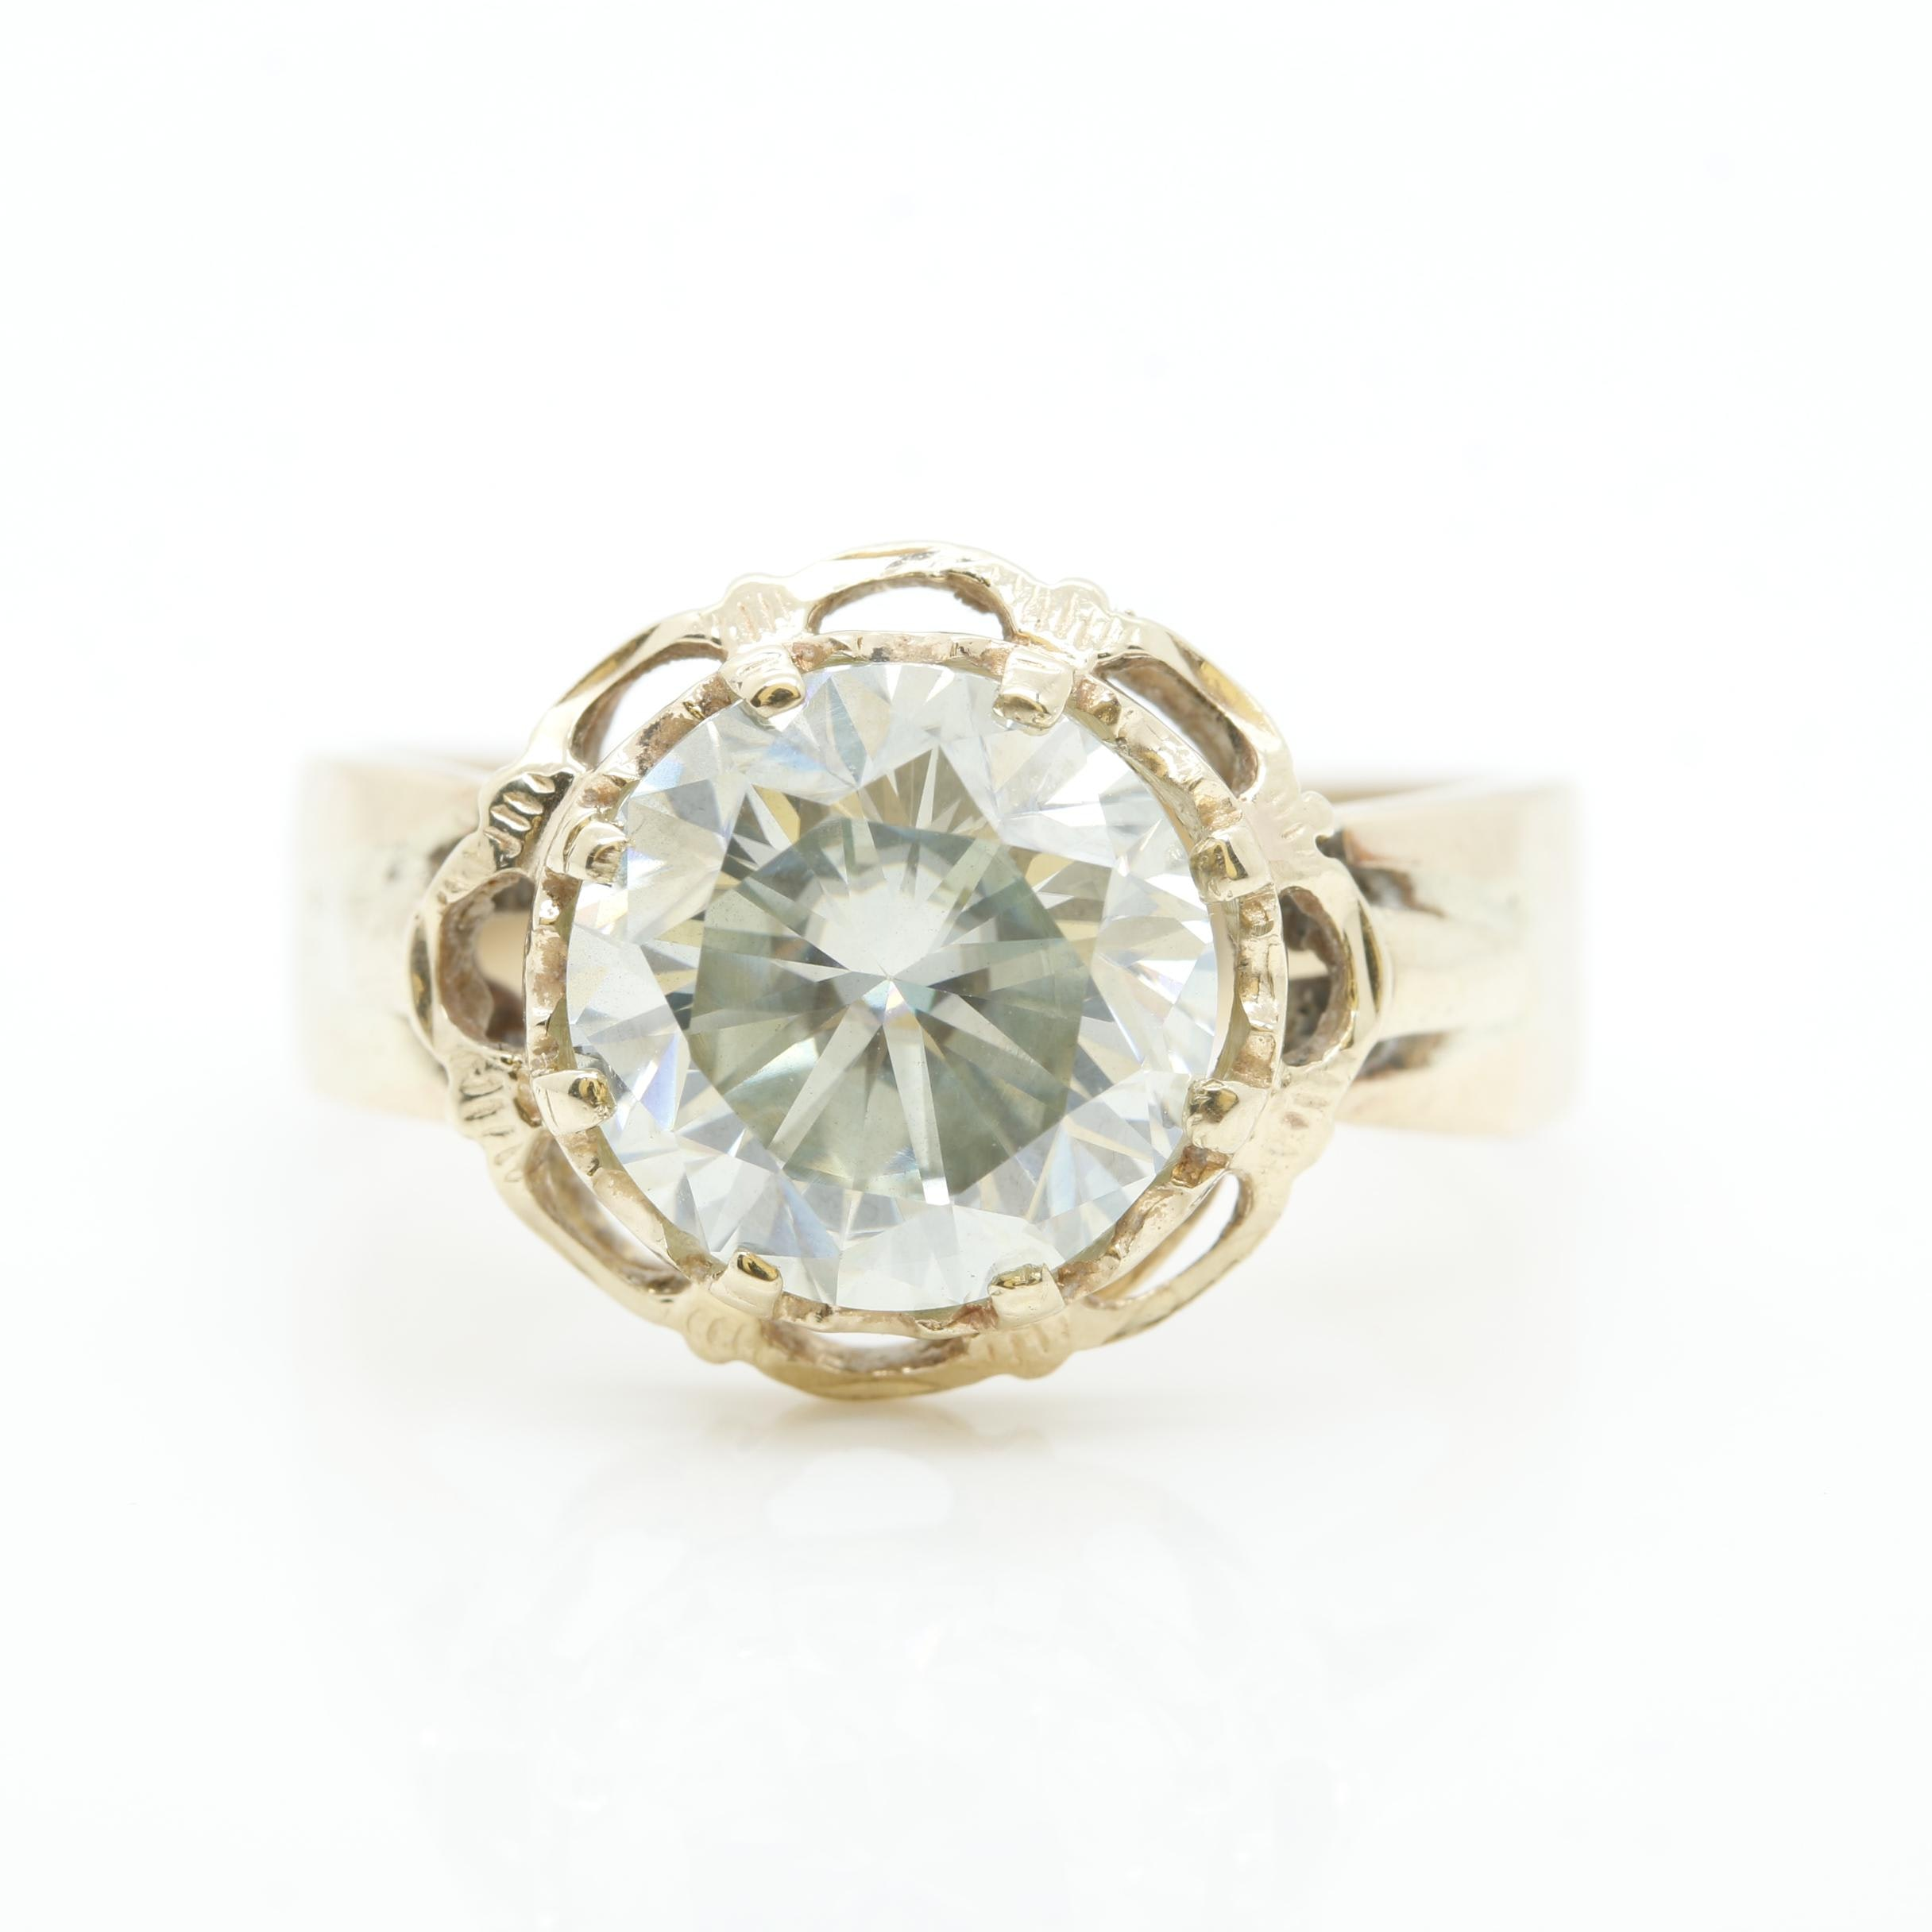 14K Yellow Gold Synthetic Moissanite Ring